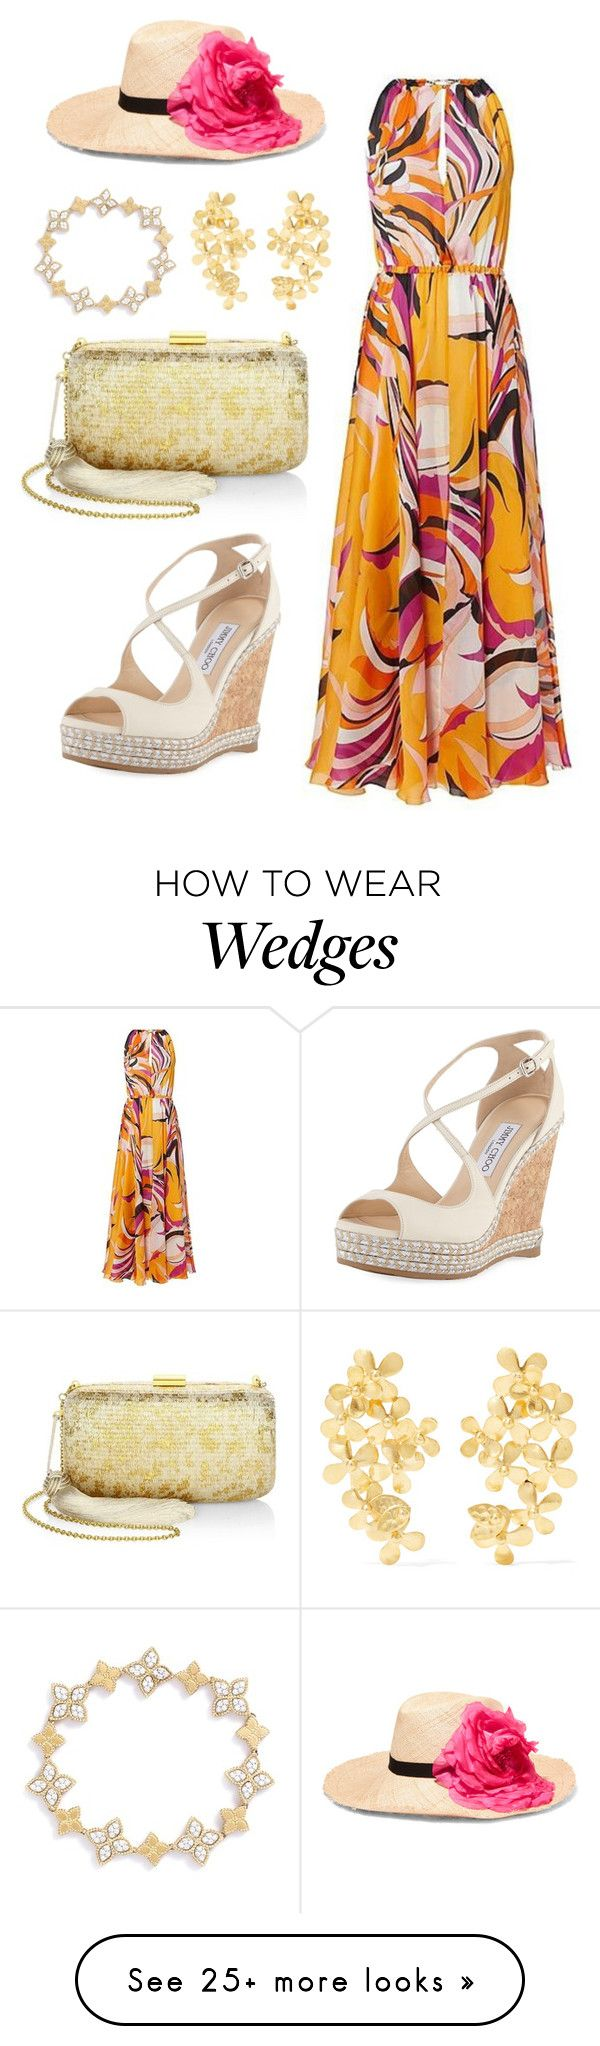 """""""Untitled #1548"""" by rubysparks90 on Polyvore featuring Emilio Pucci, Eugenia Kim, Jimmy Choo, Kayu, Pippa Small and Roberto Coin"""